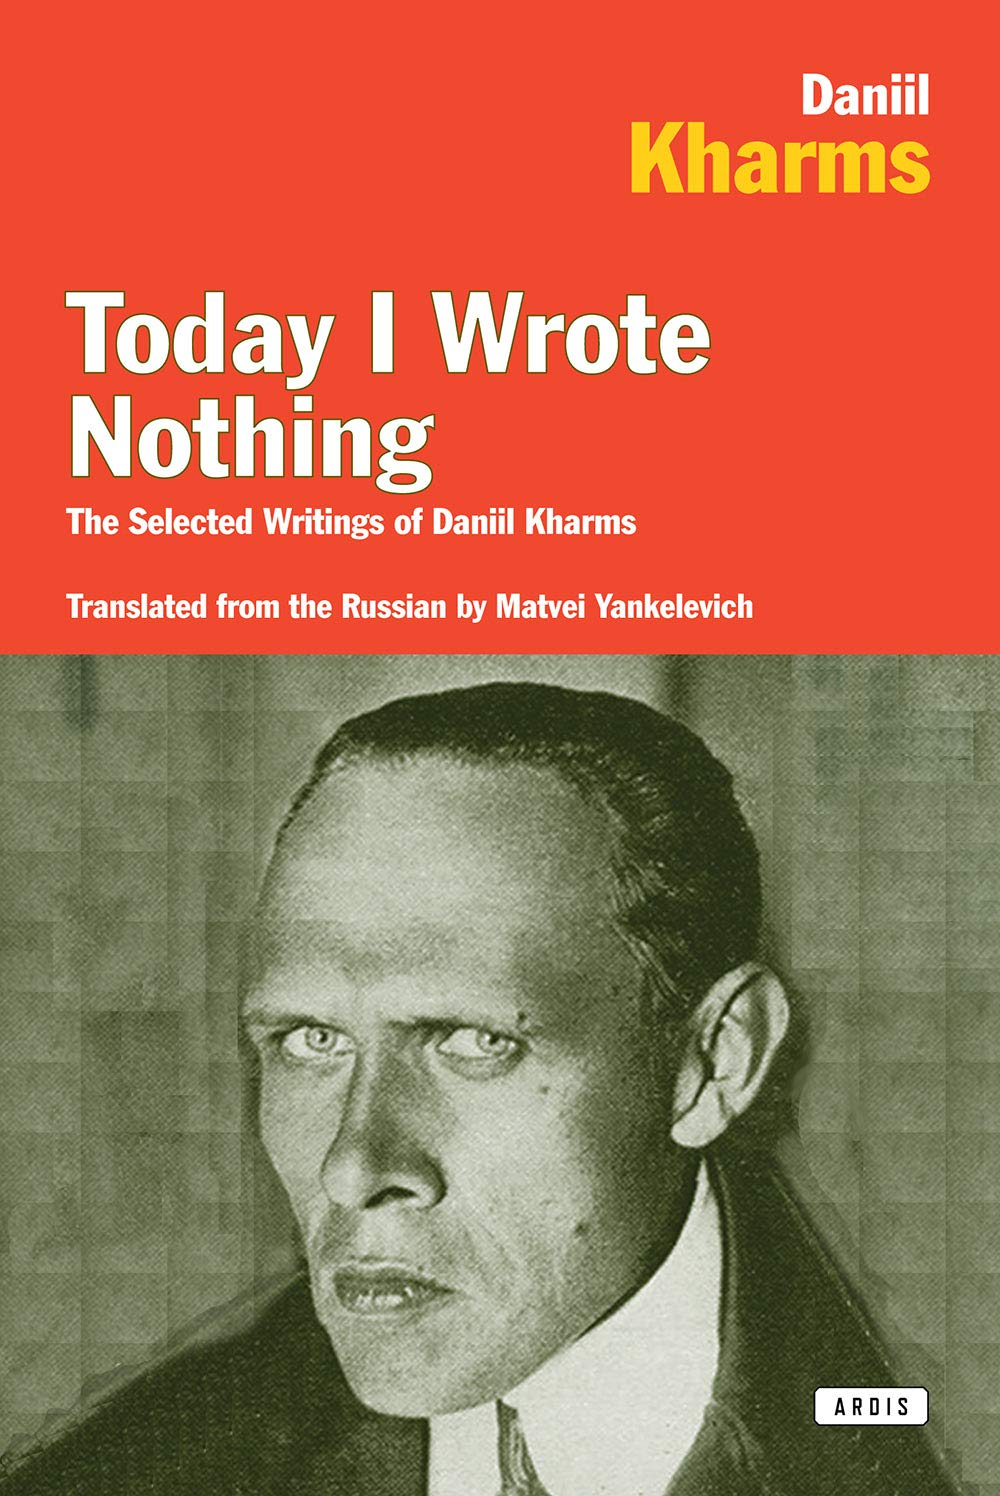 The Selected Writings of Daniil Kharms Today I Wrote Nothing